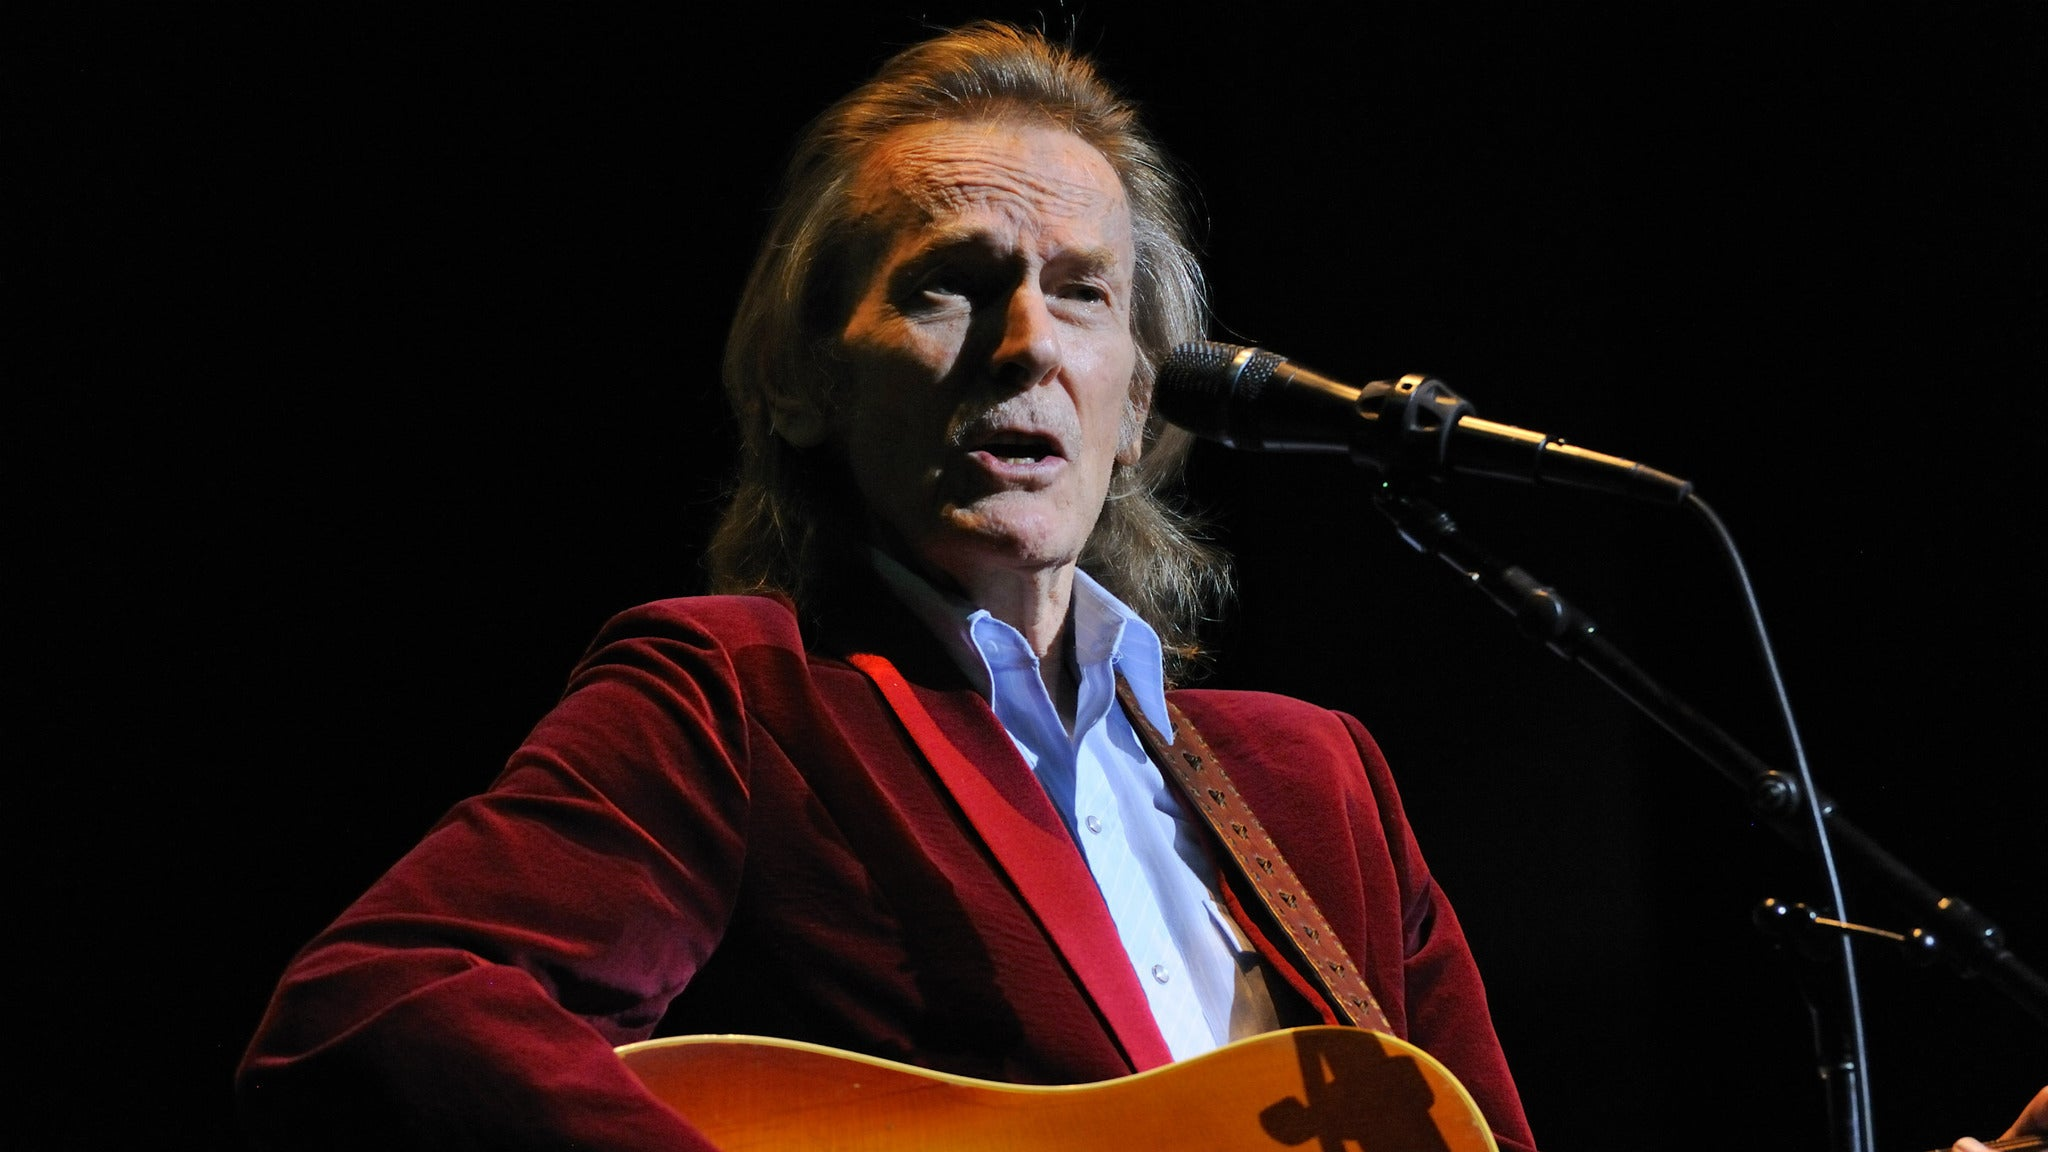 Gordon Lightfoot at Saban Theatre